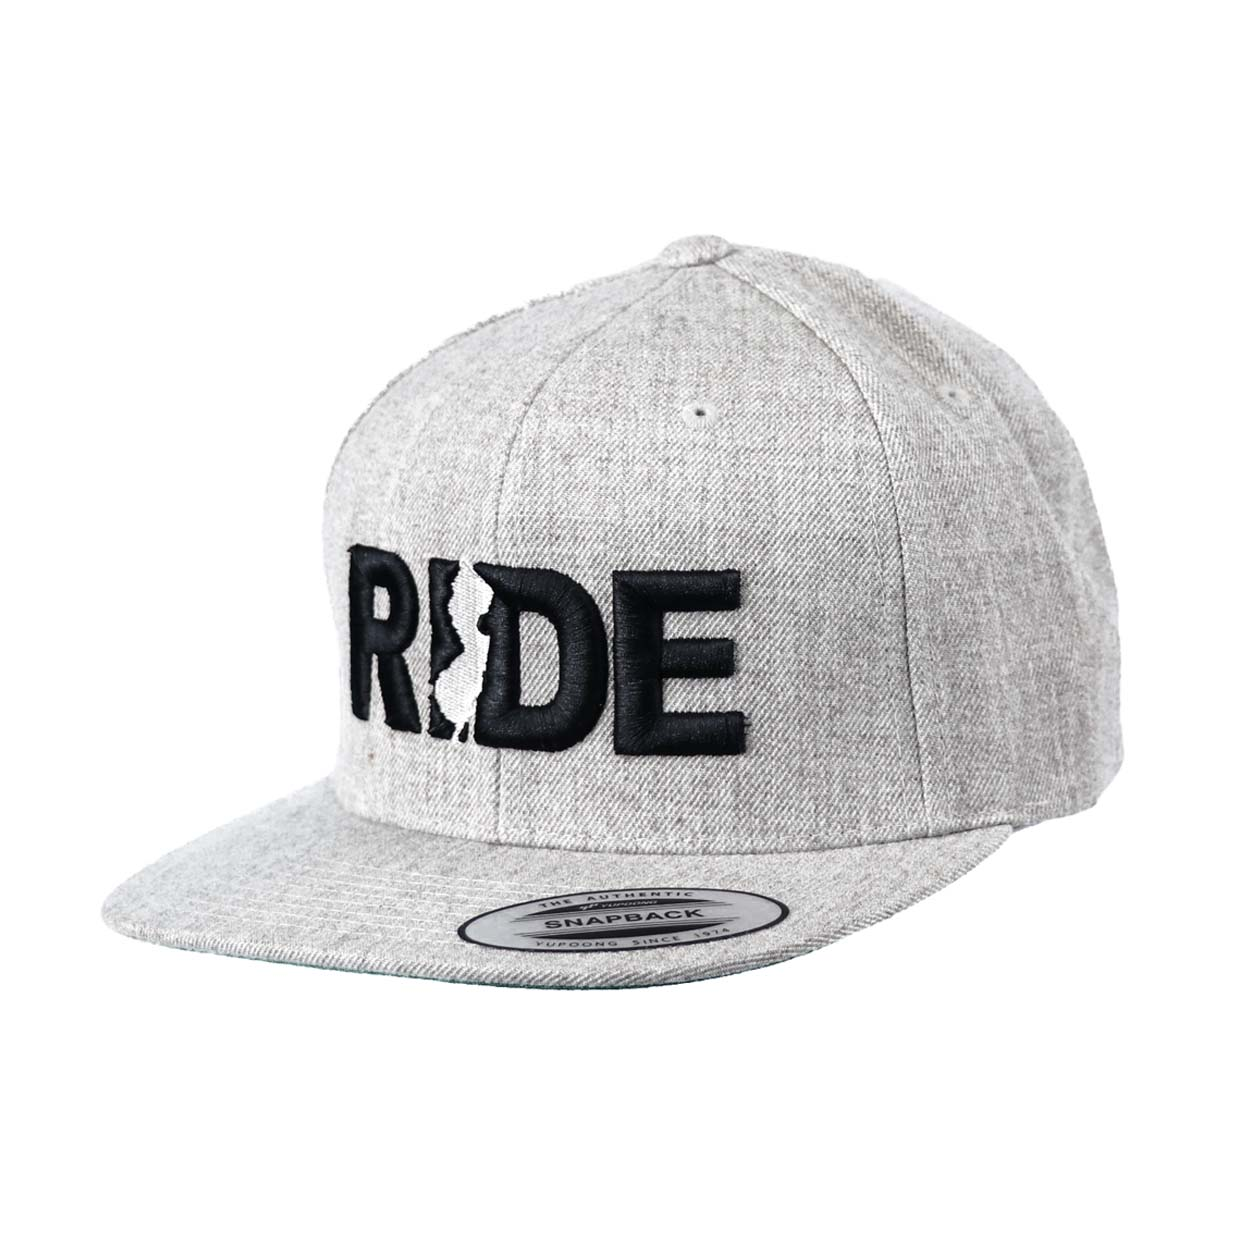 Ride New Jersey Classic Embroidered  Snapback Flat Brim Hat Gray/Black